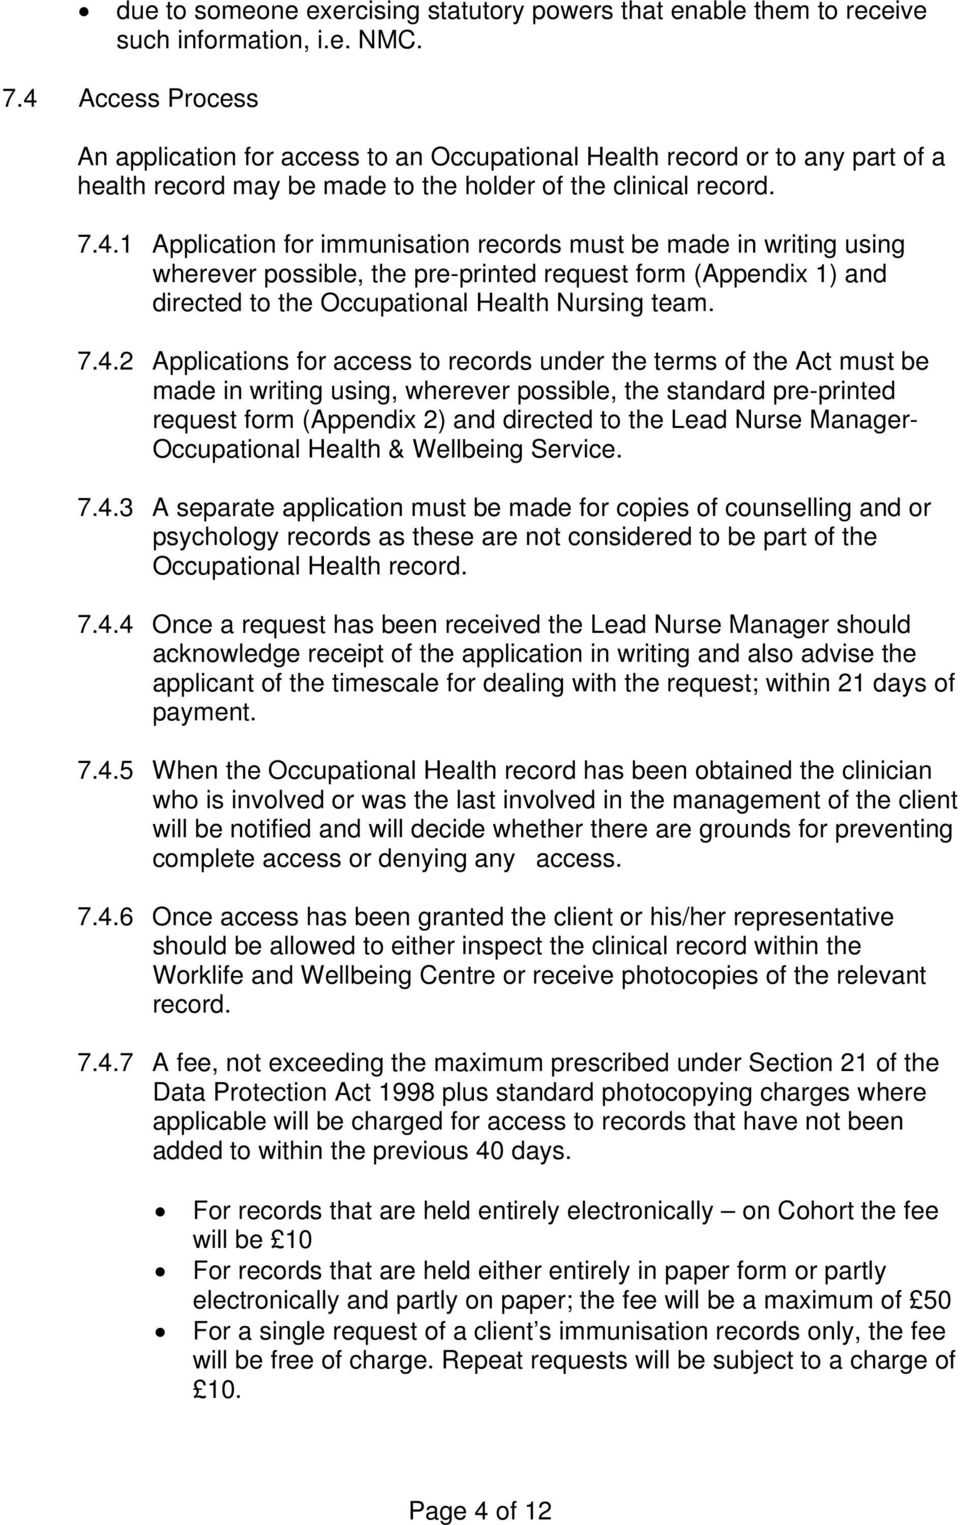 7.4.2 Applications for access to records under the terms of the Act must be made in writing using, wherever possible, the standard pre-printed request form (Appendix 2) and directed to the Lead Nurse